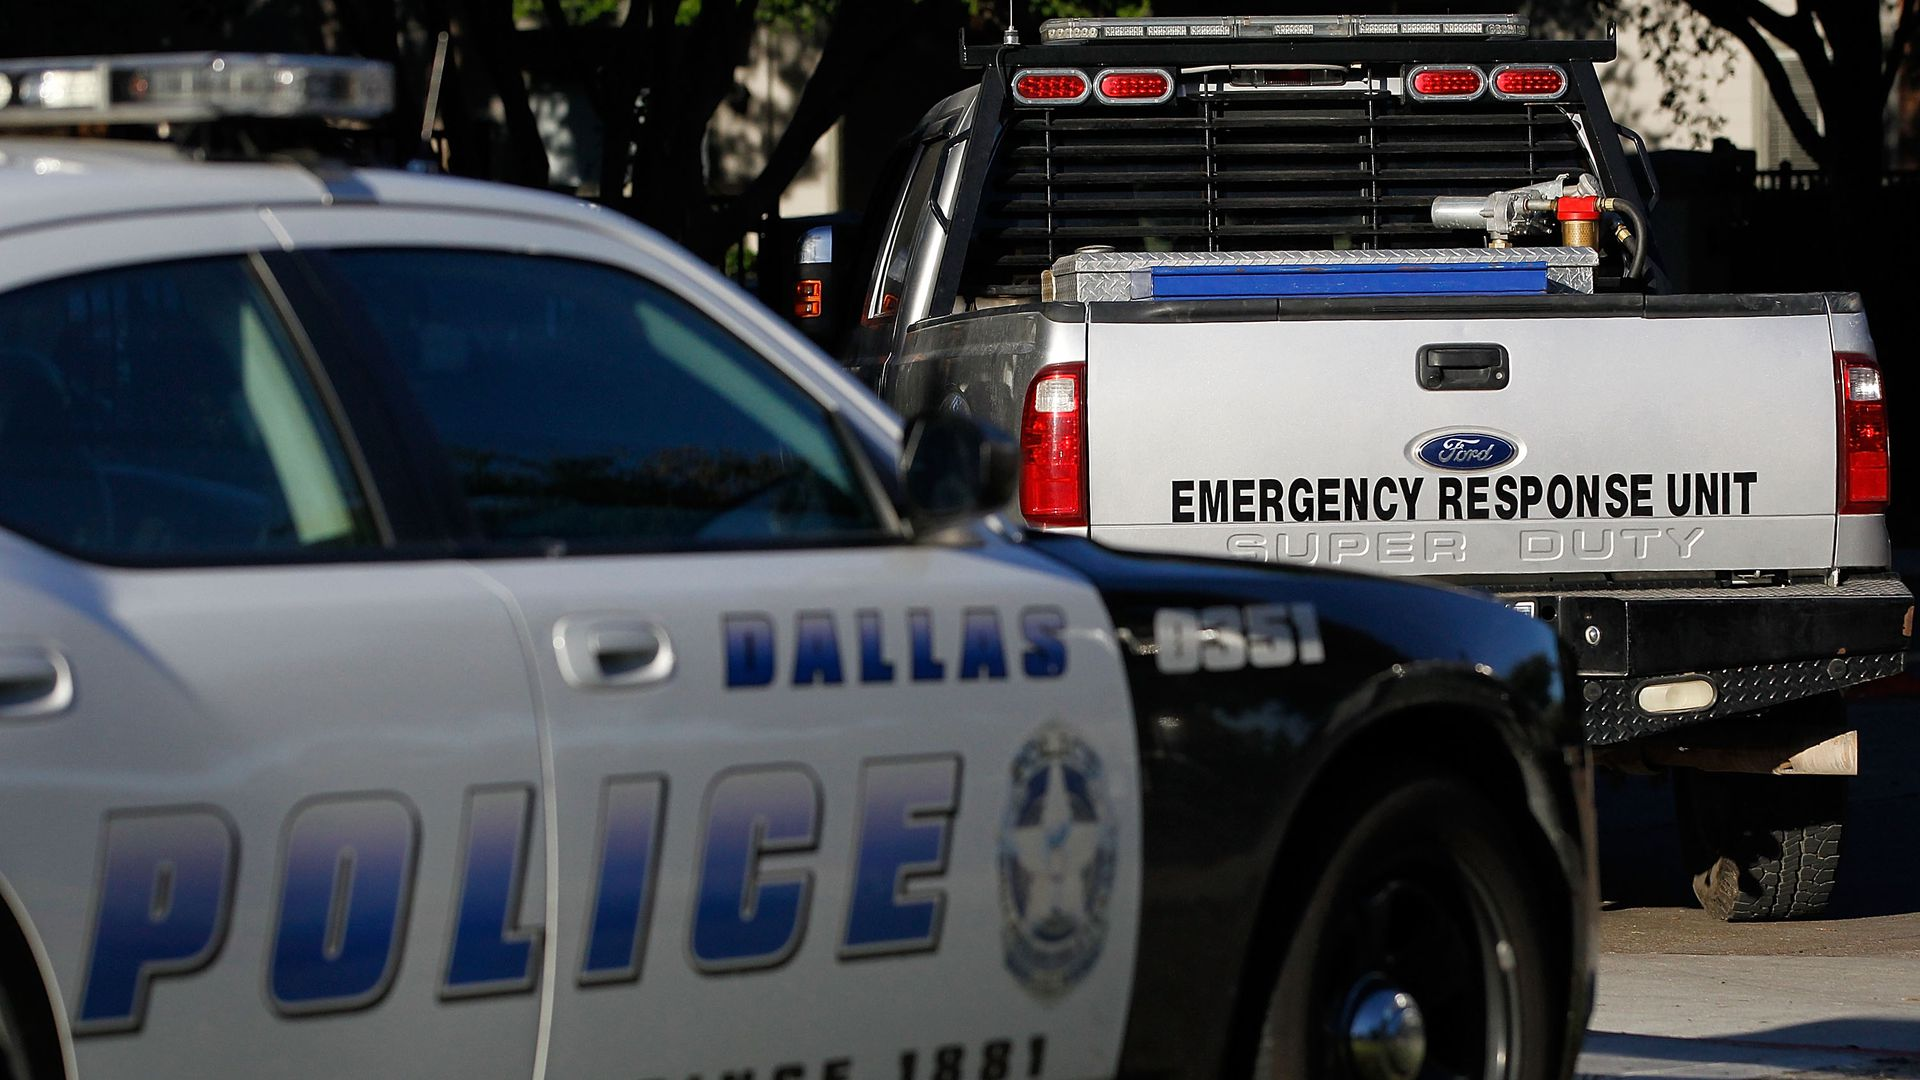 A truck with the words EMERGENCY RESPONSE UNIT is parked in front of a Dallas Police squad car.